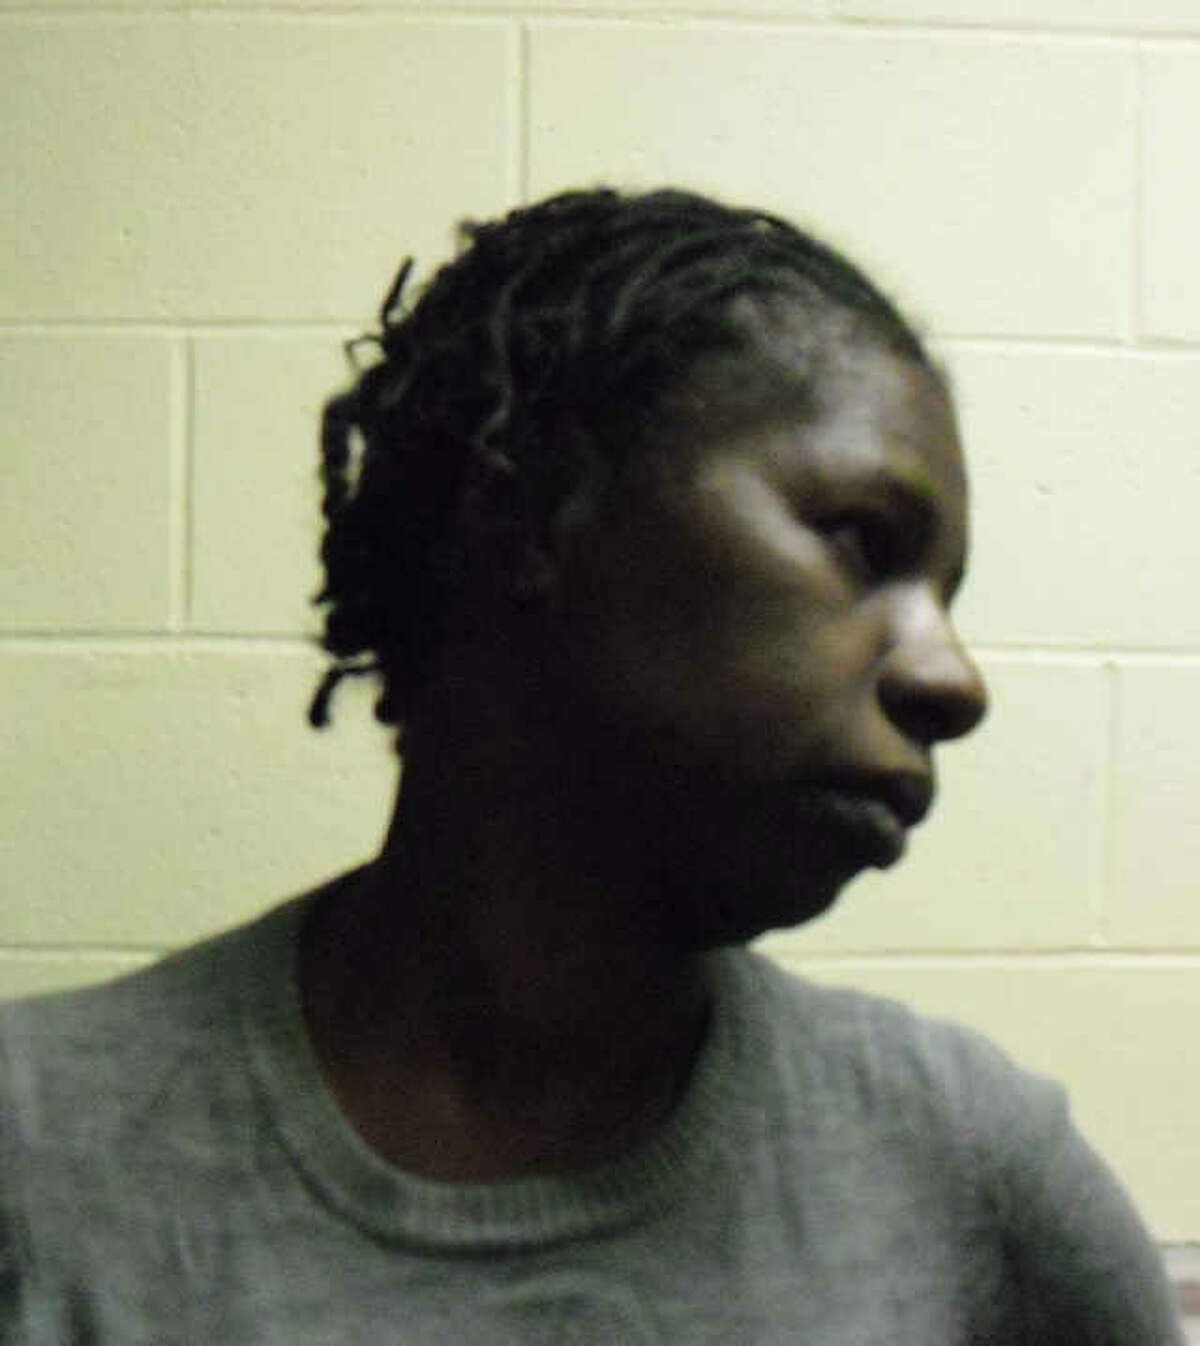 This booking photo provided by the Wilton Police Department shows Theresa Clinding of Hempstead, N.Y. Clinding was arrested last week on charges that she stole from than $5,000 in cash from a Danbury Road dry cleaning business in October 2011.